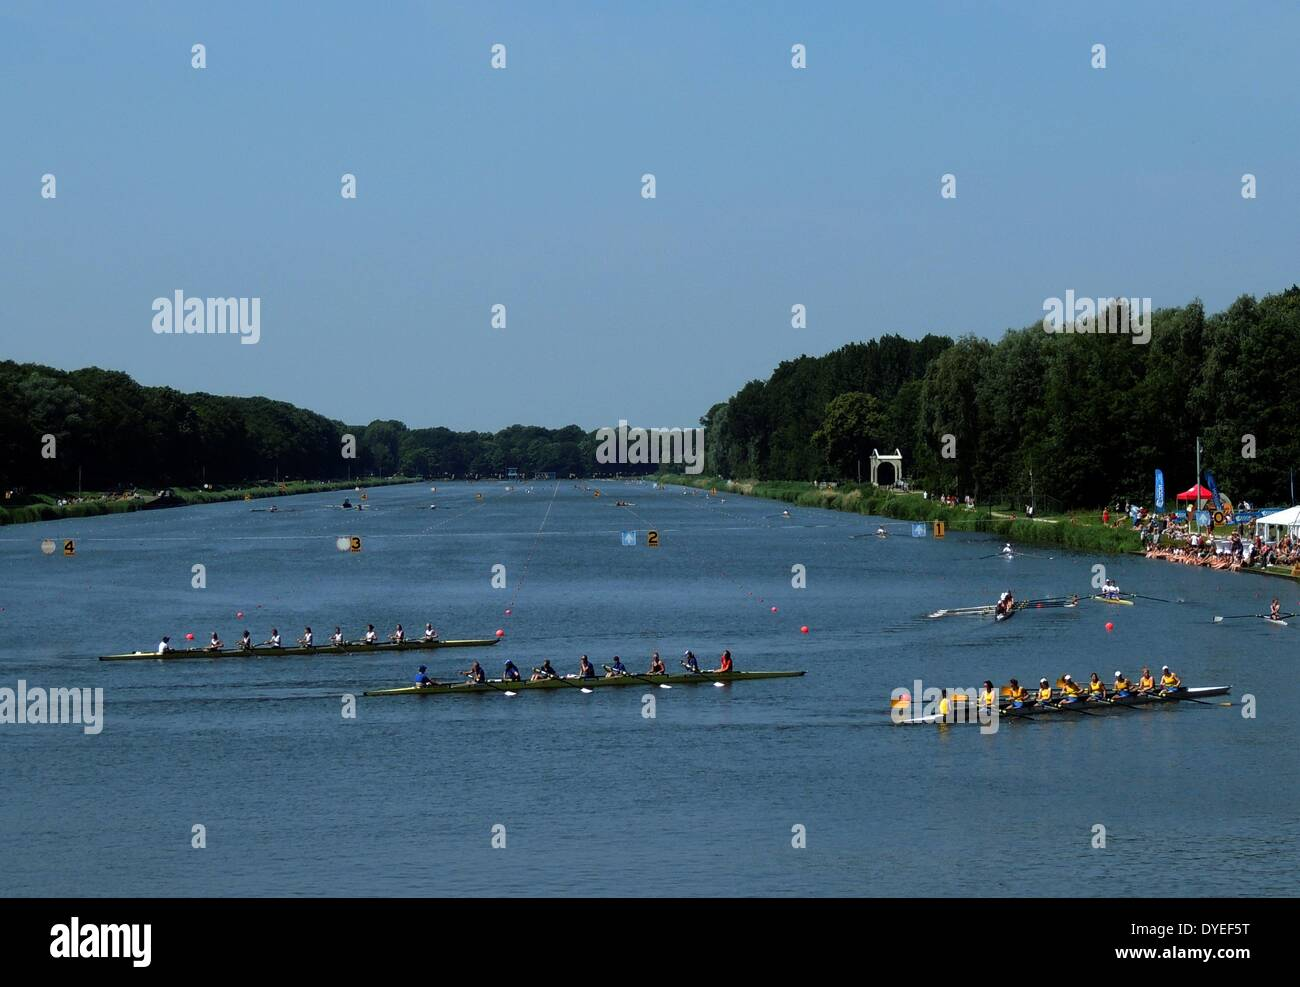 1932 Olympic Rowing Lake 2013 A.D. - Stock Image